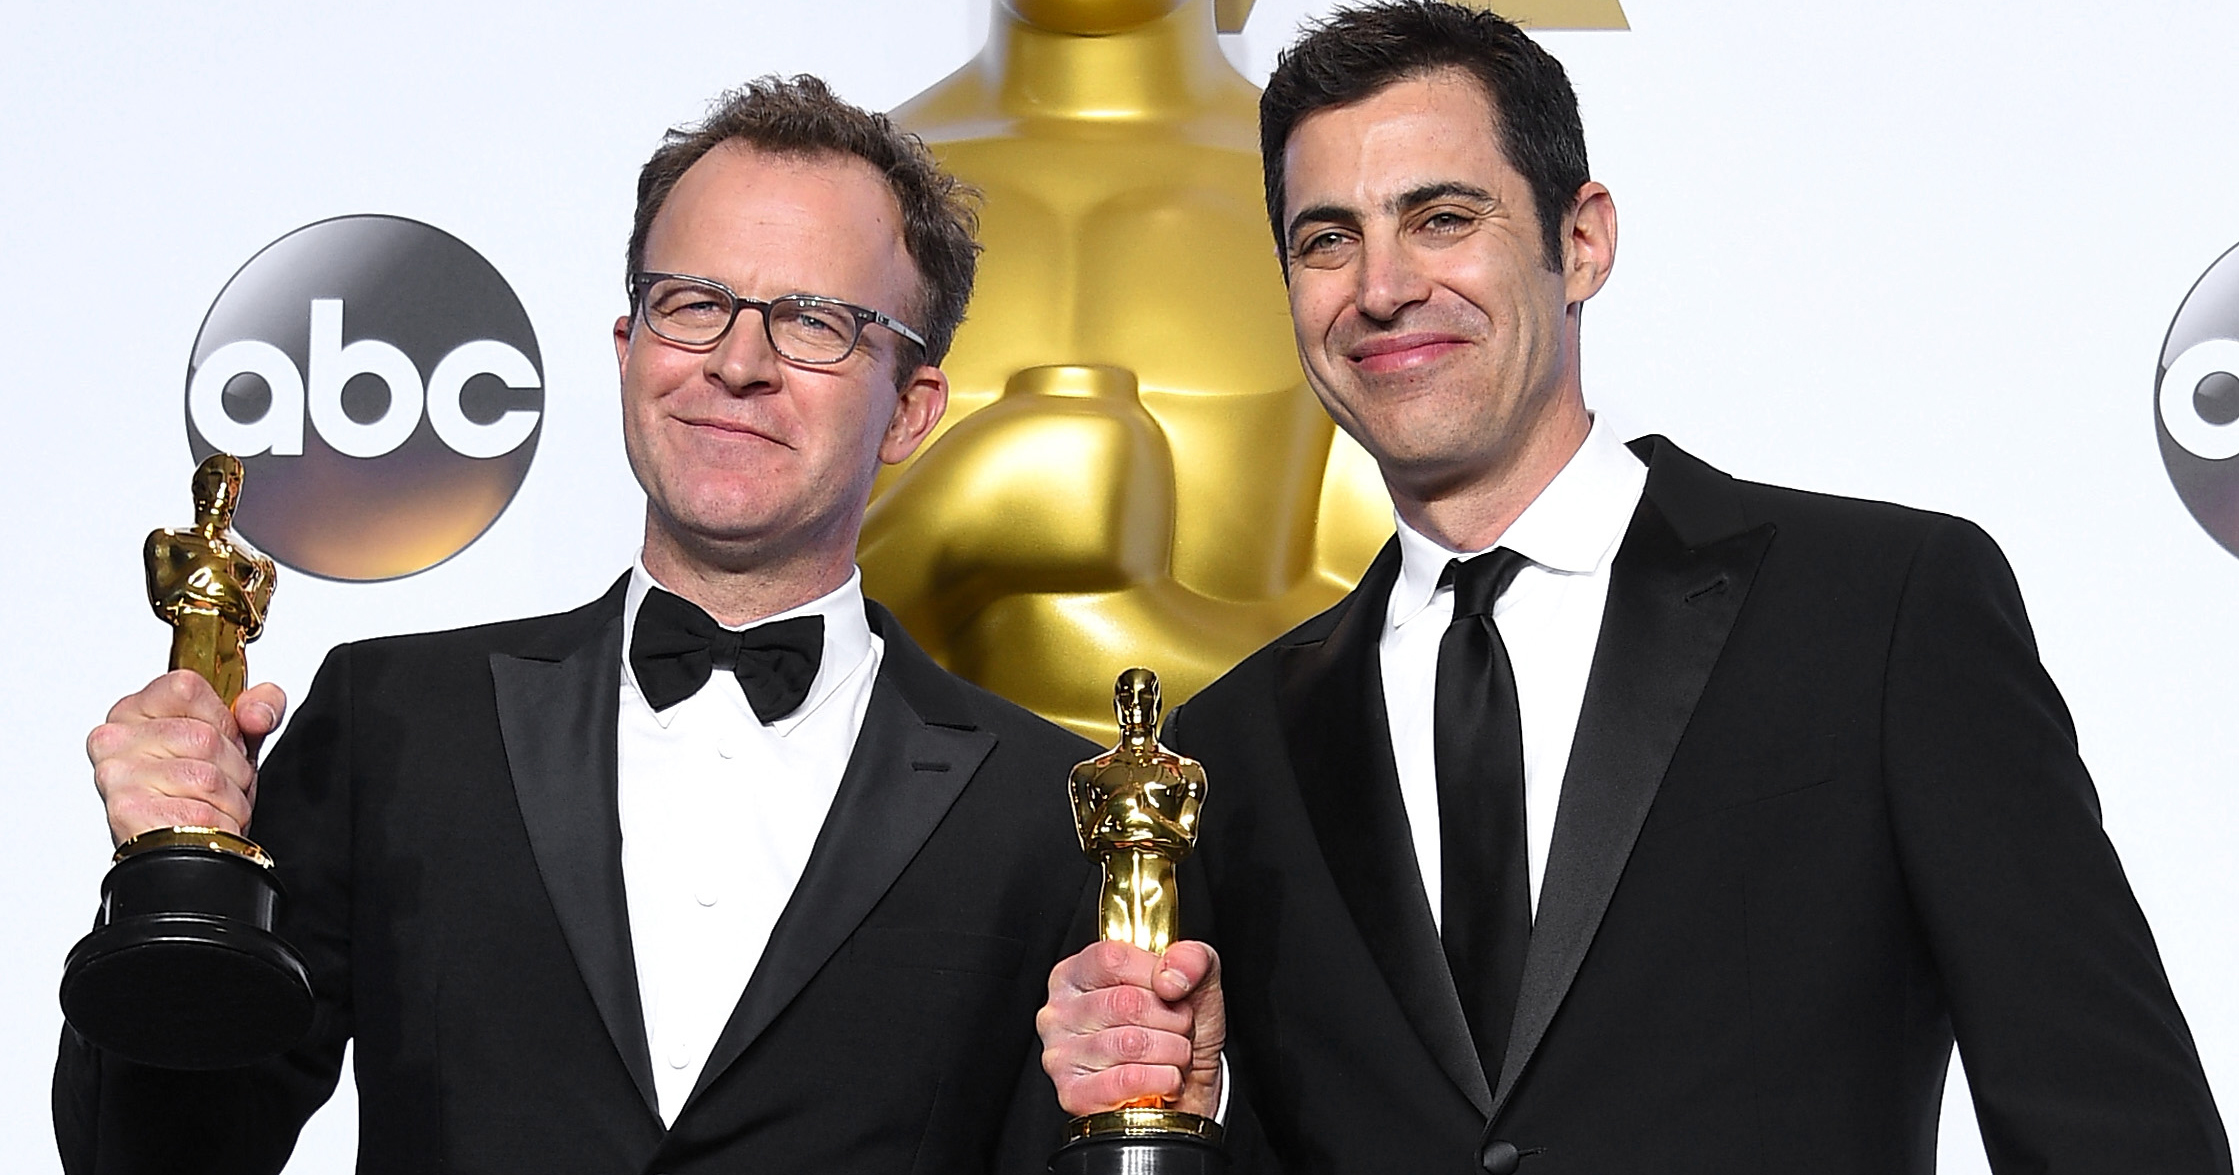 Tom McCarthy, left, and Josh Singer, right, on Feb. 28, 2016 in Hollywood, Calif.